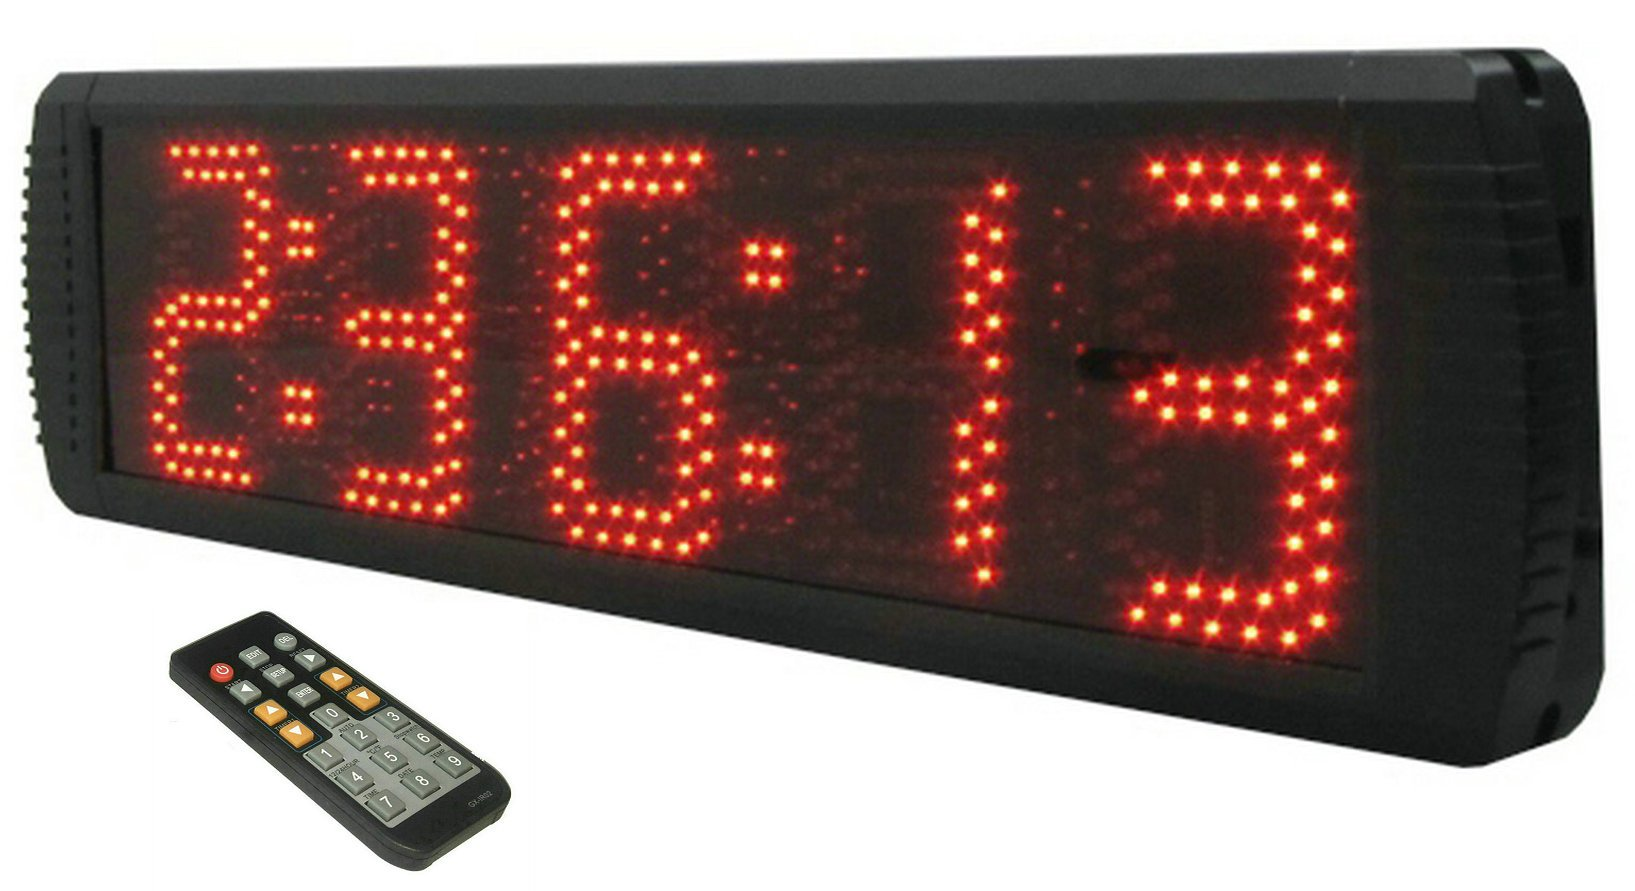 GANXIN Portable 5'' High 5 Digits LED Race Clock with Tripod for Running Events, Countdown/up Digital RaceTimer, by Remote Control by Ganxin (Image #2)